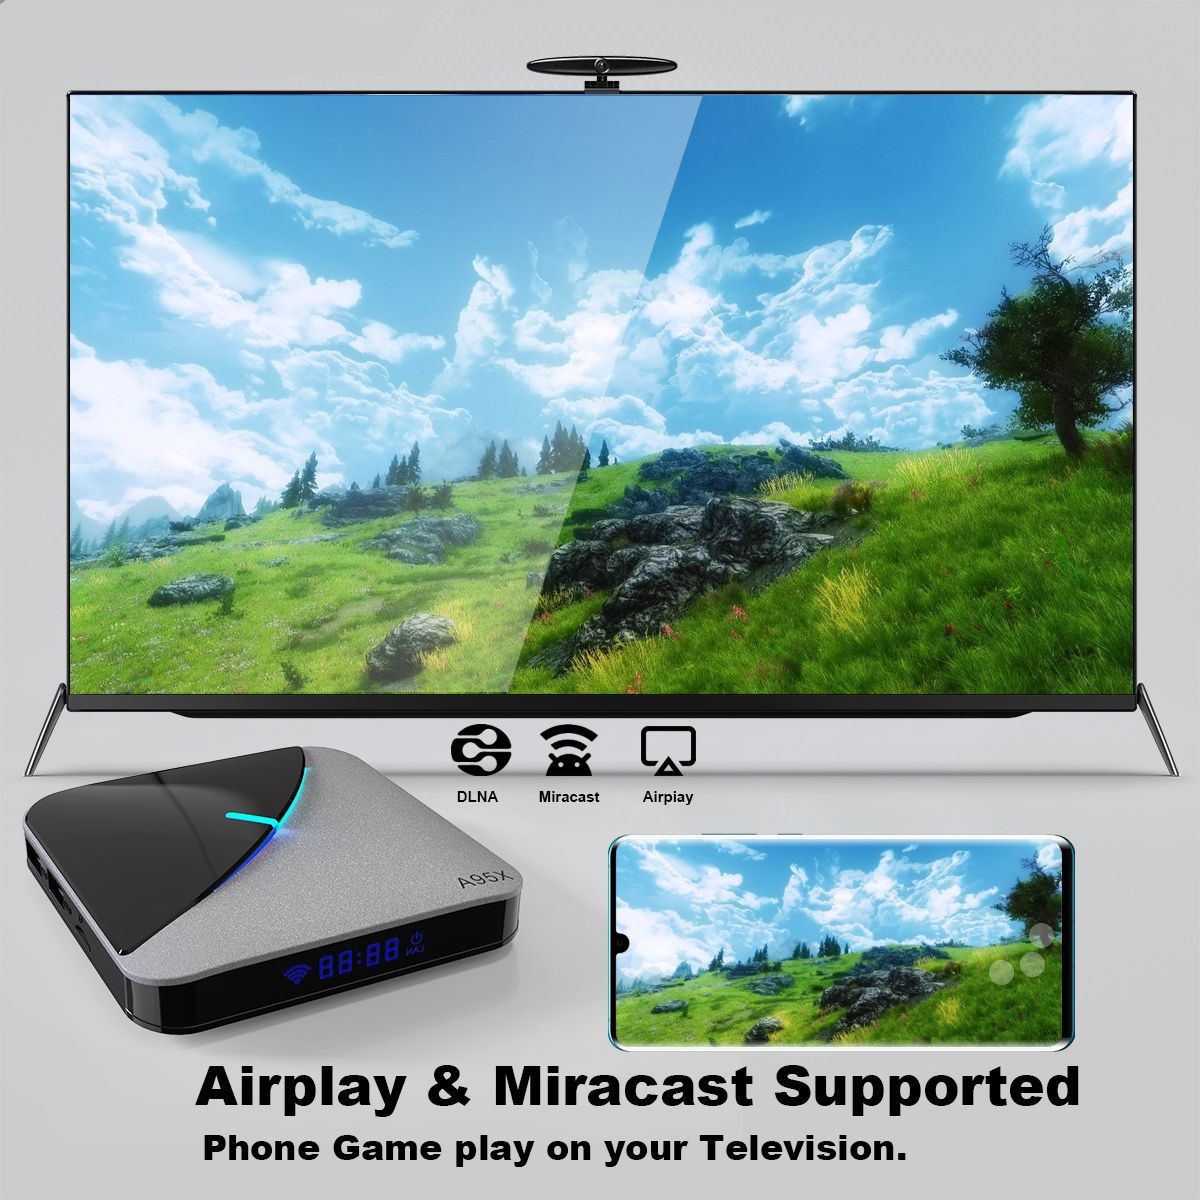 airplay and miracast supported